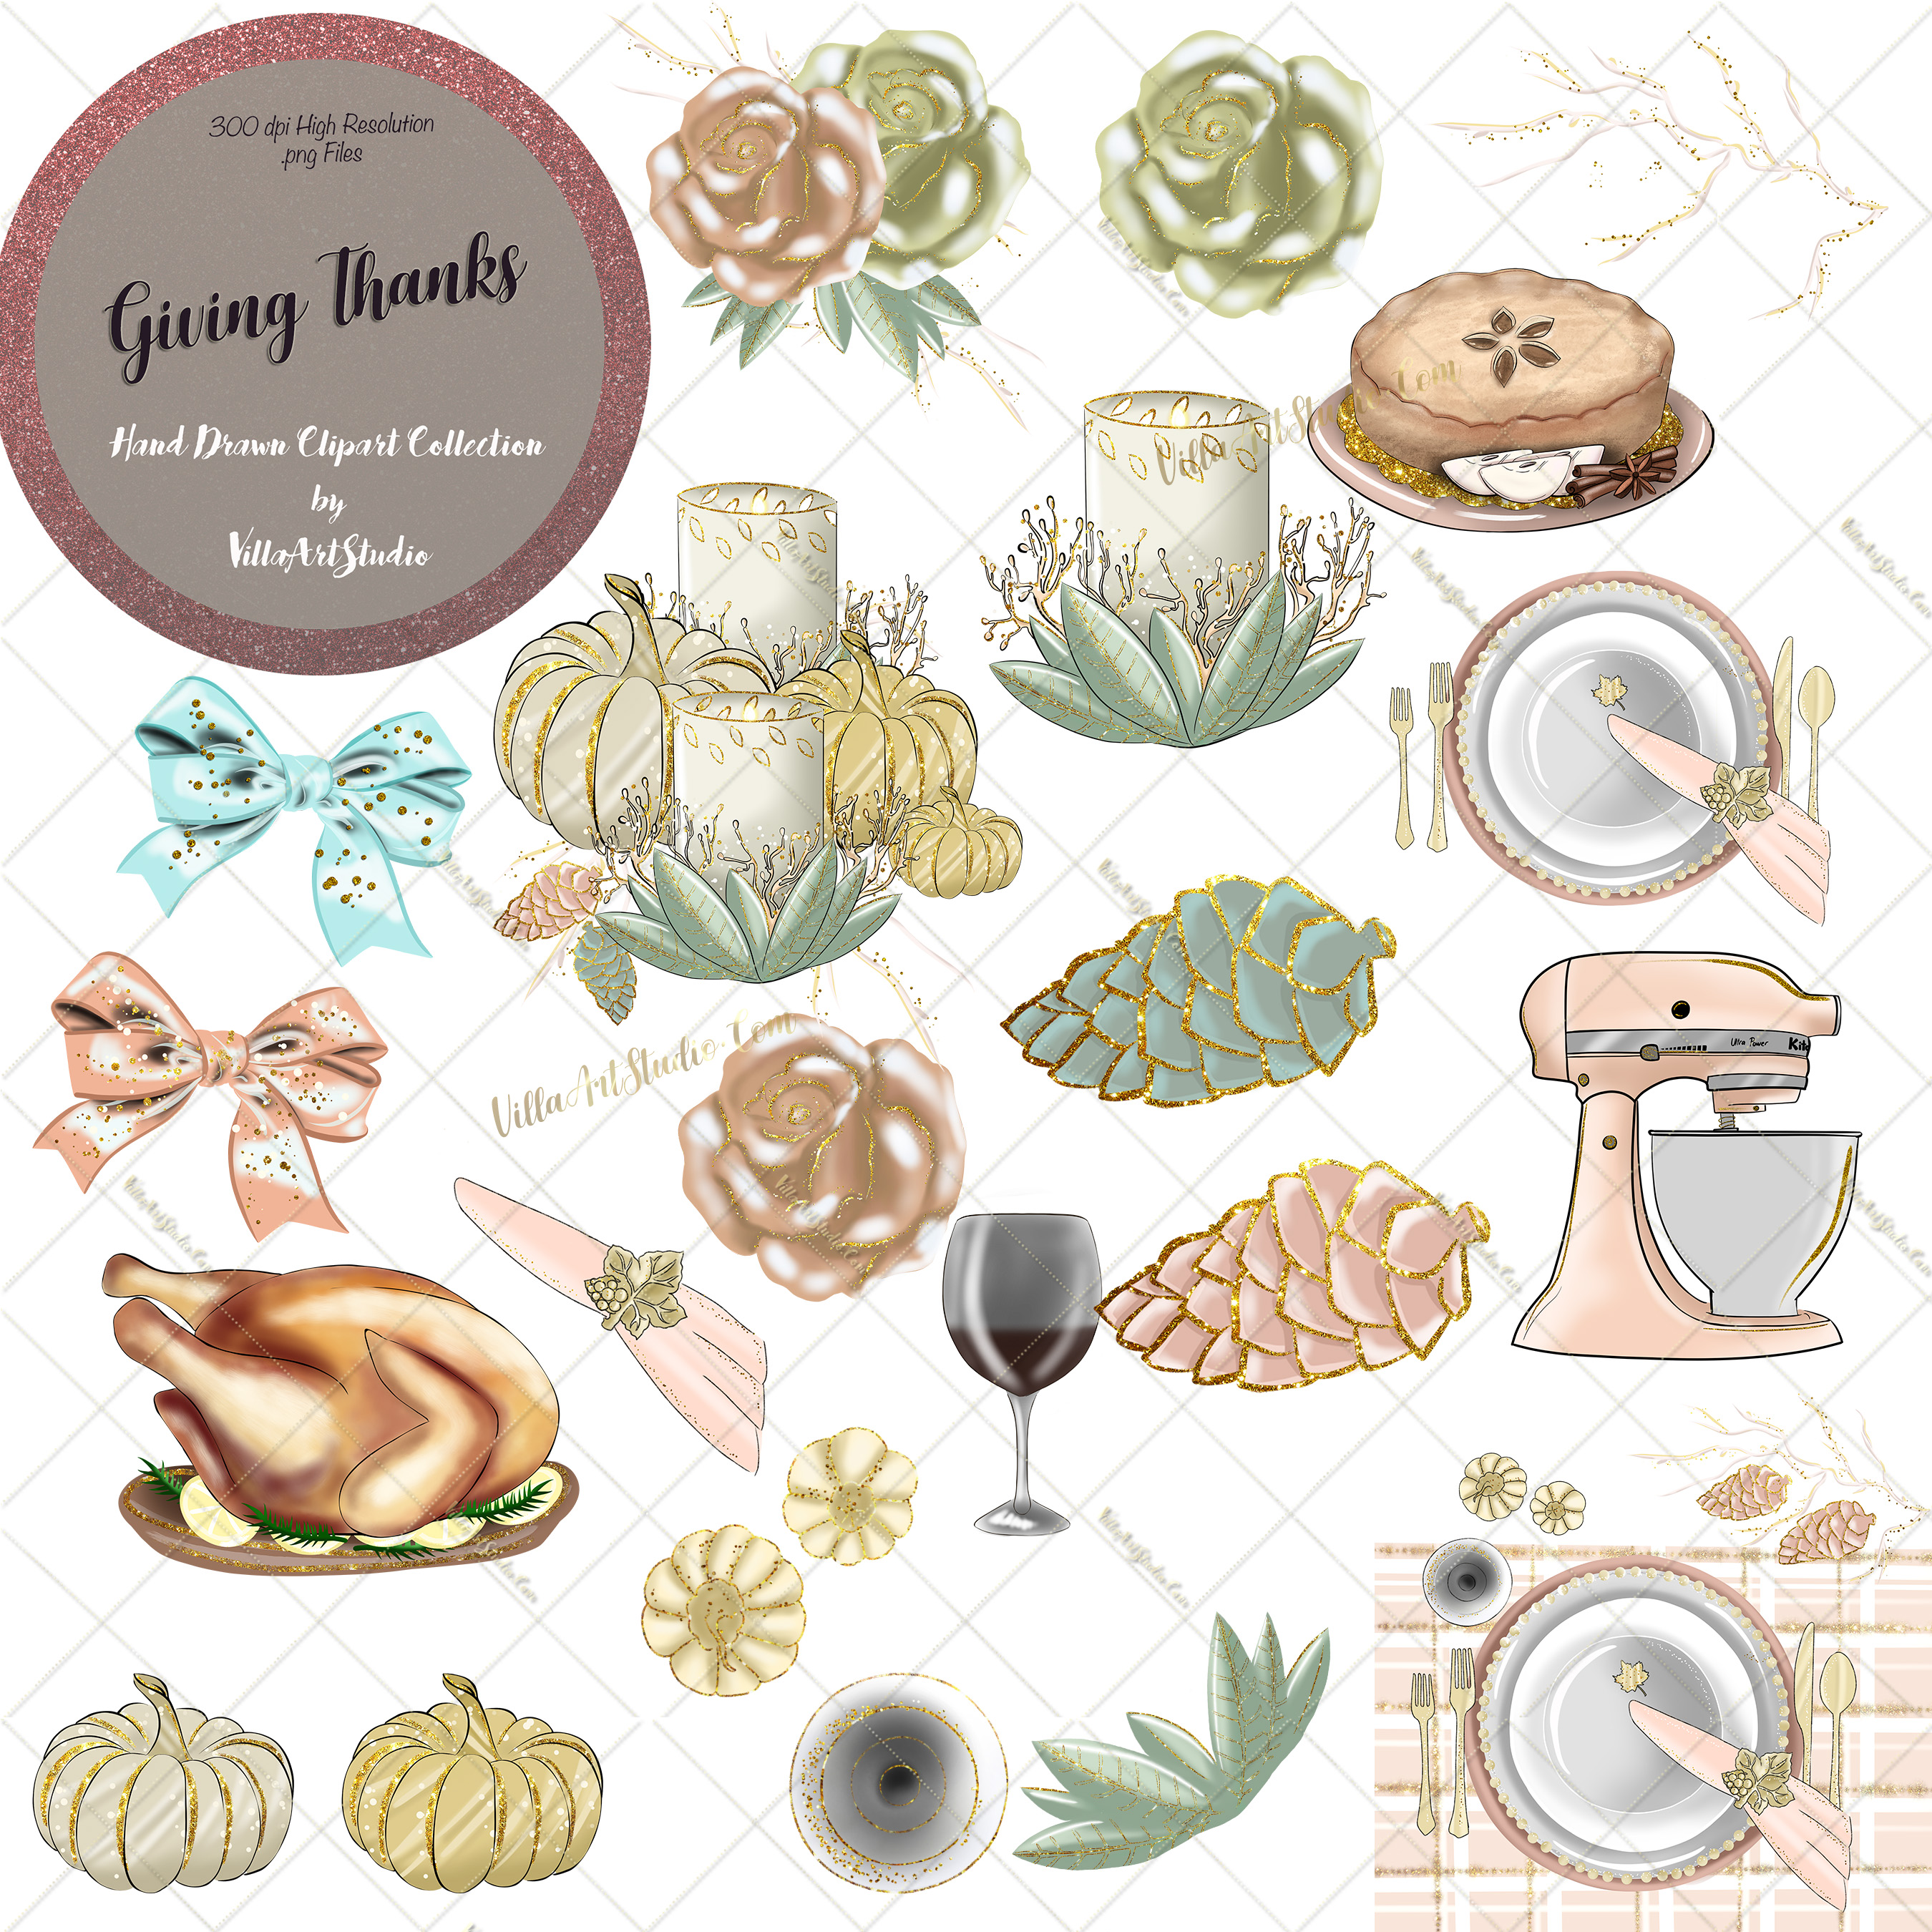 Giving Thanks Clipart Collection Villaartstudio Com